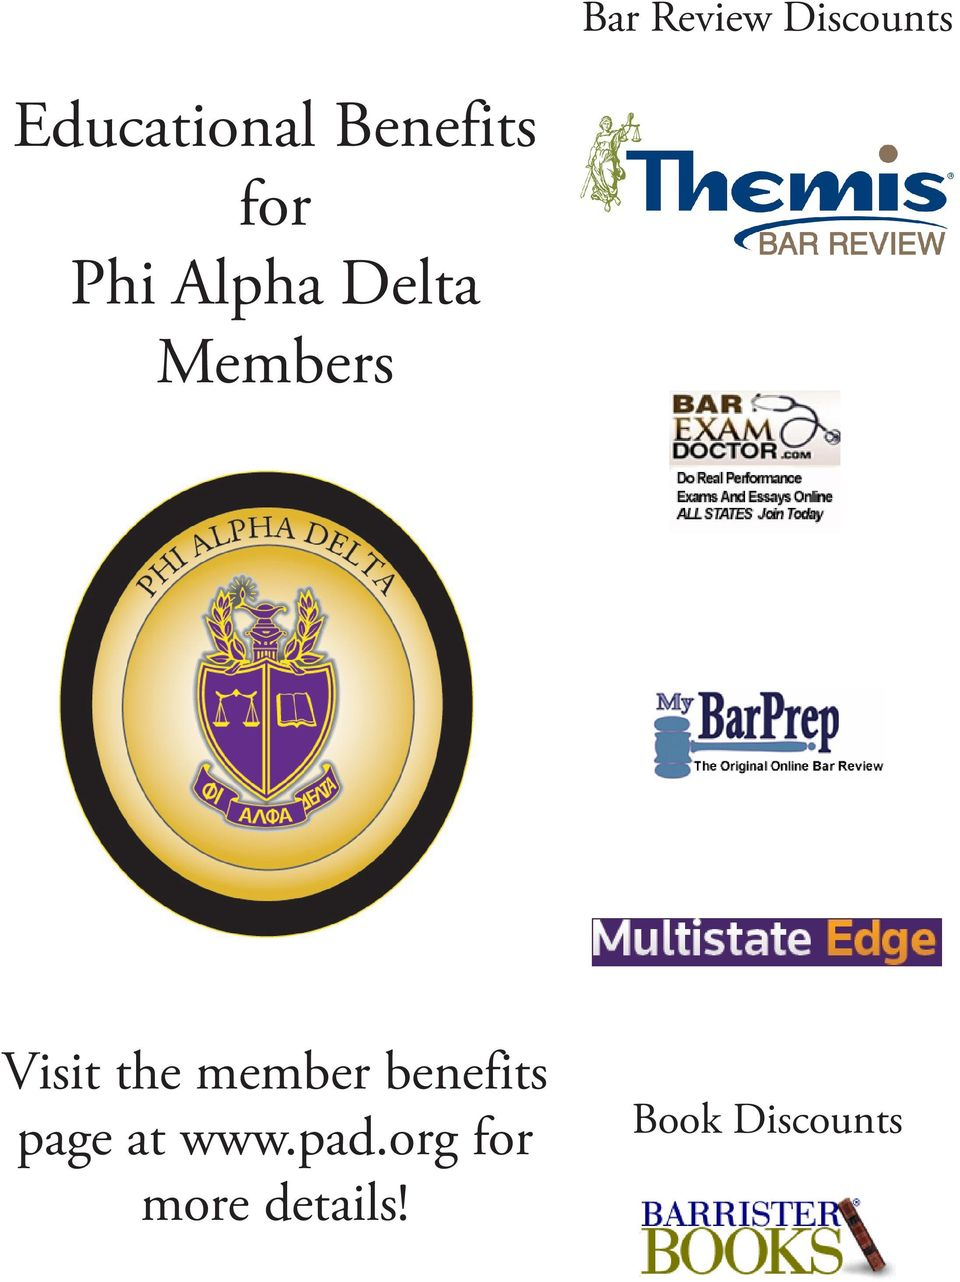 Visit the member benefits page at